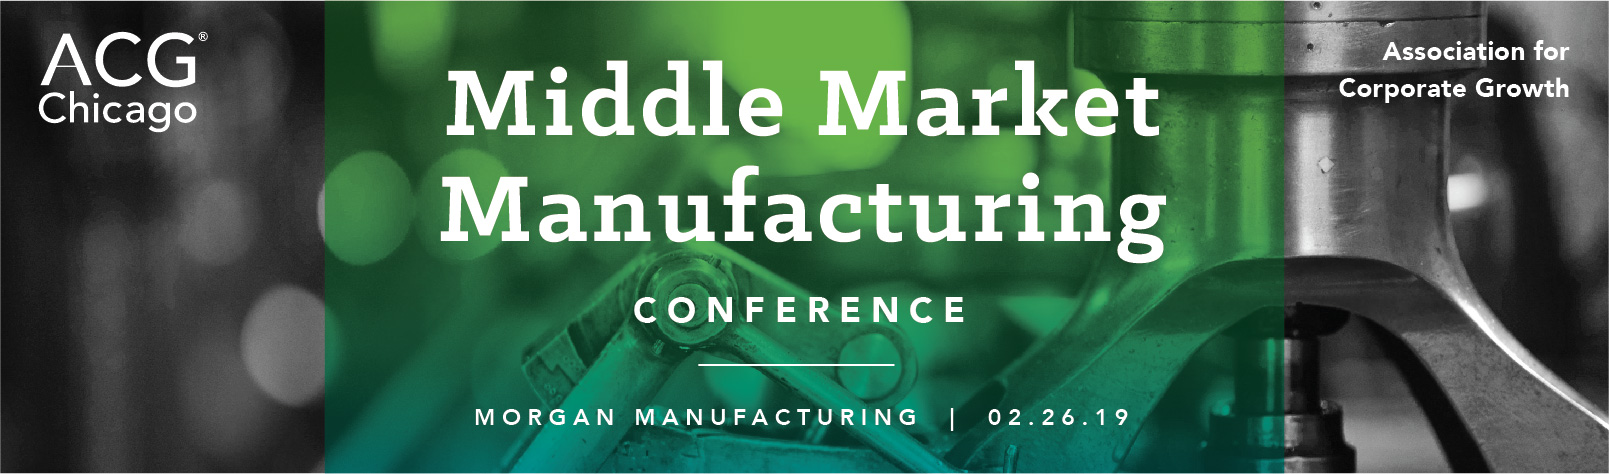 2019 Middle Market Manufacturing Conference